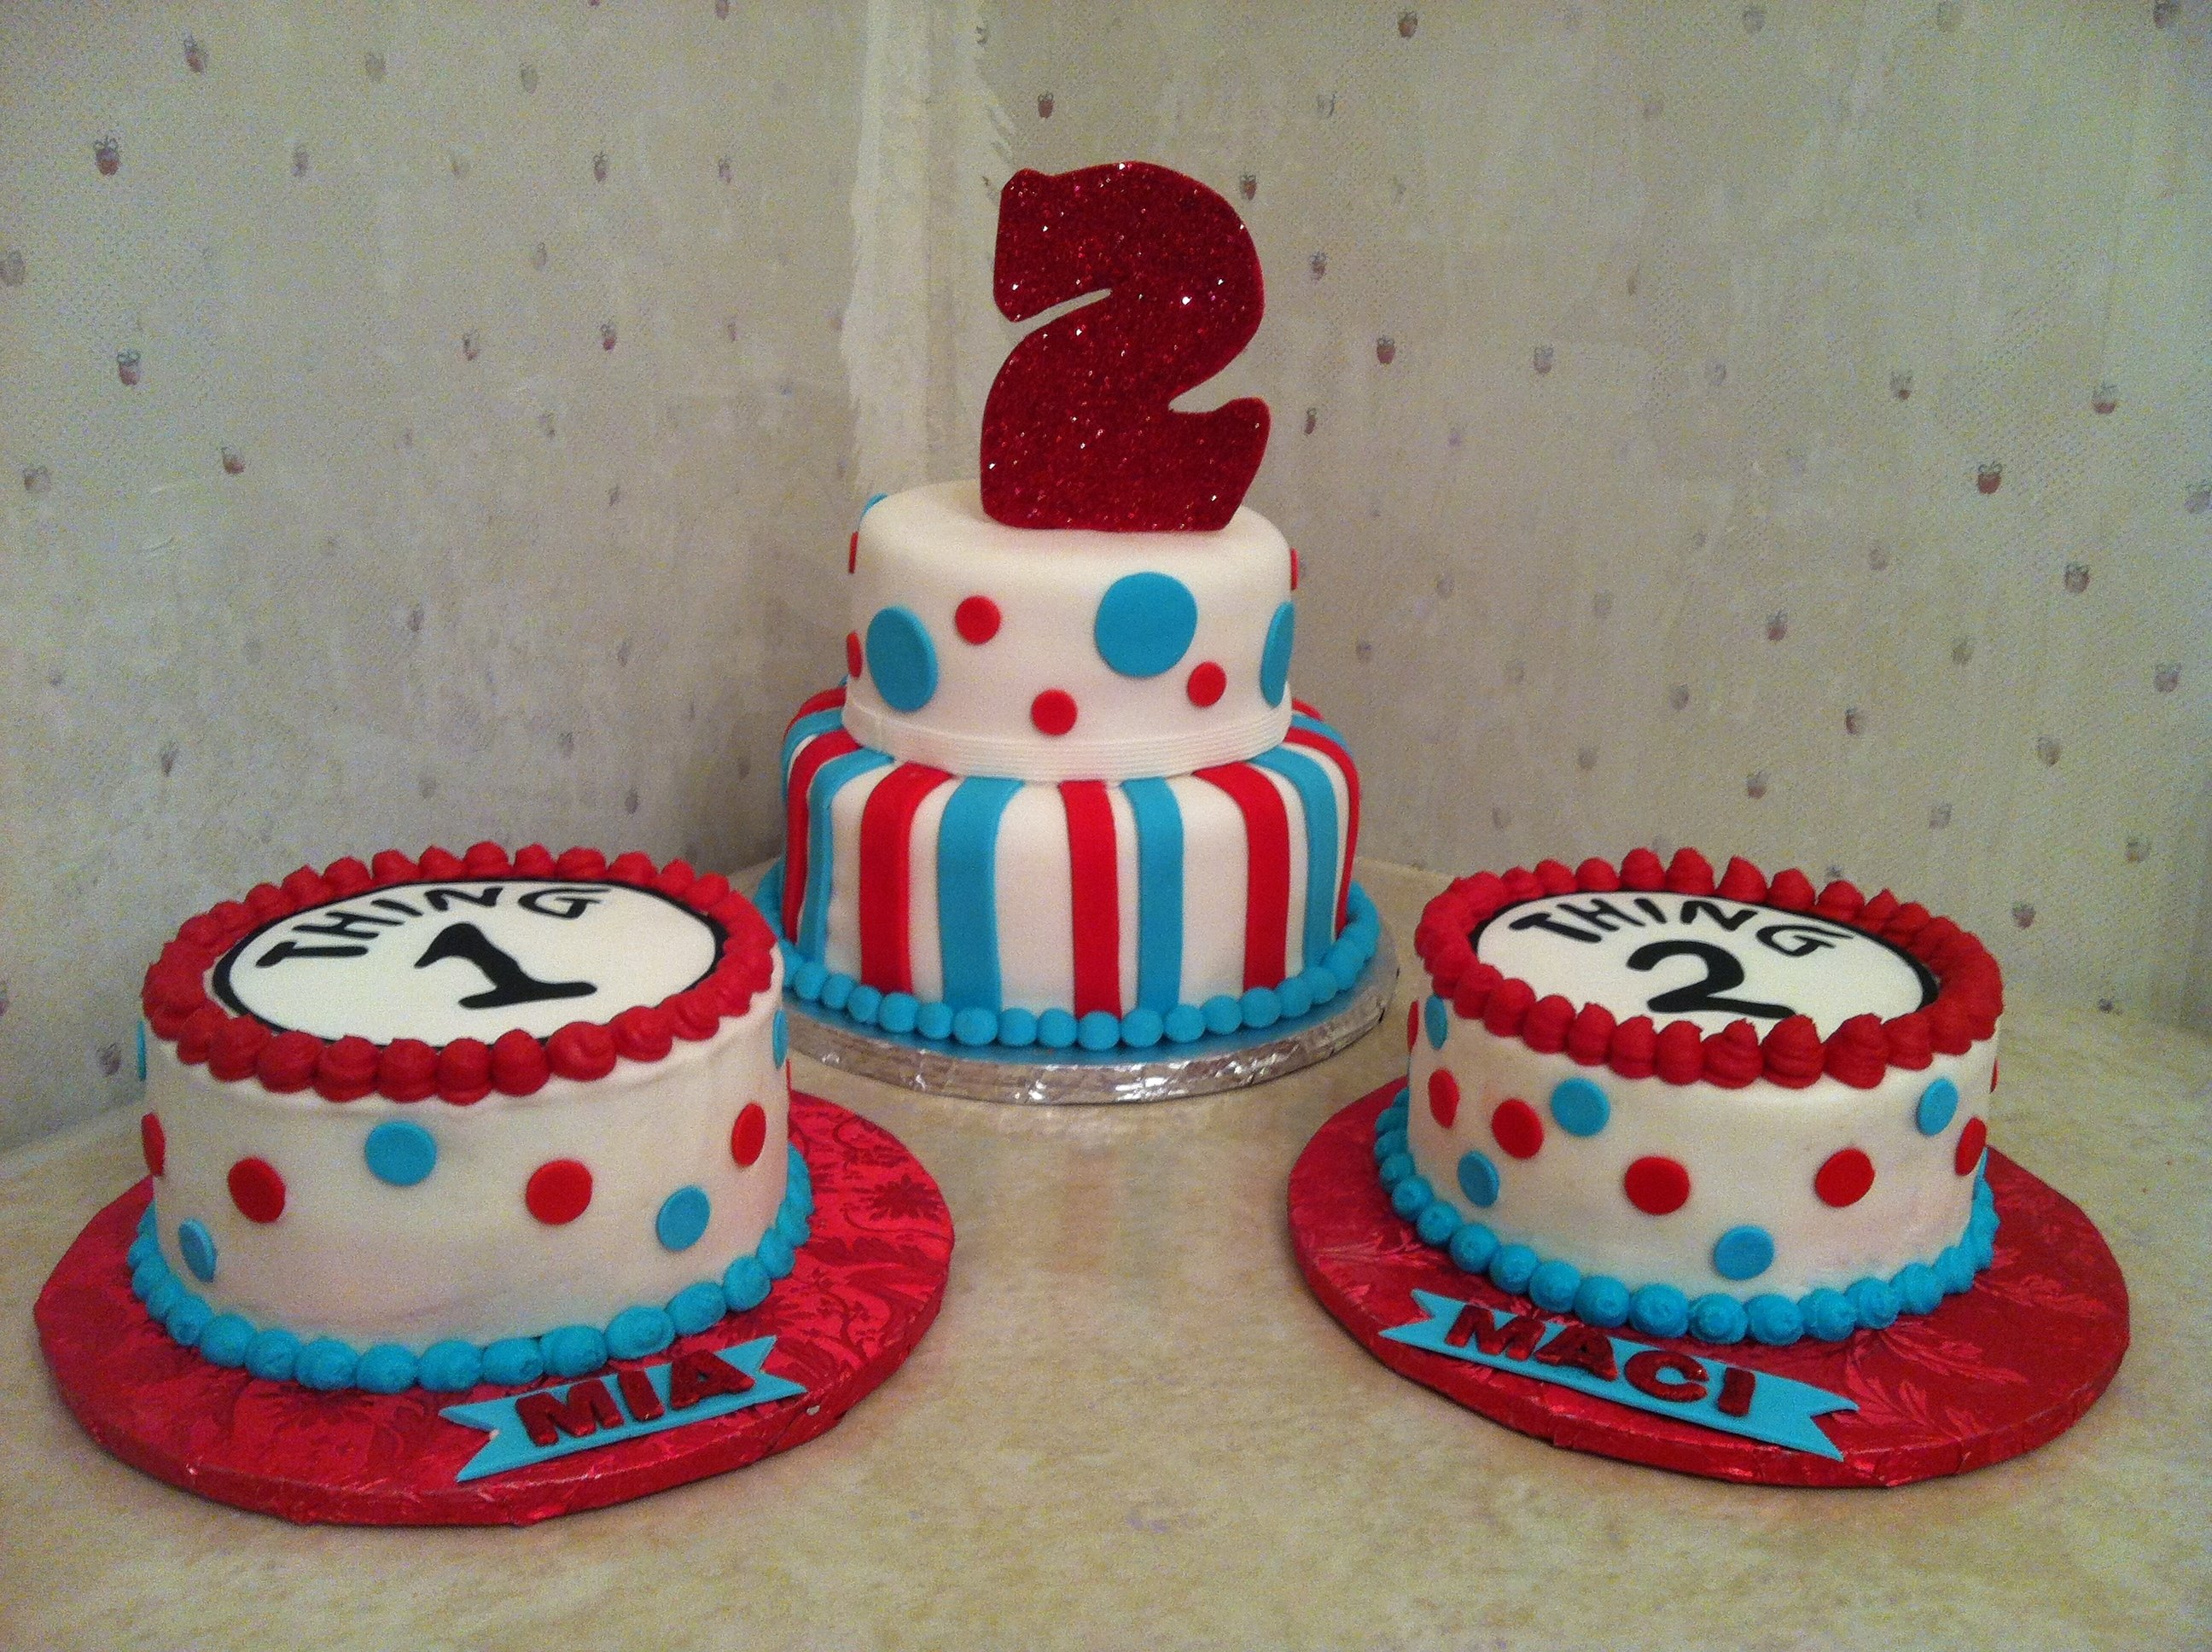 10 Awesome Thing 1 And Thing 2 Cake Ideas thing 1 thing 2 2nd birthday cake with smash cakes to go with for a